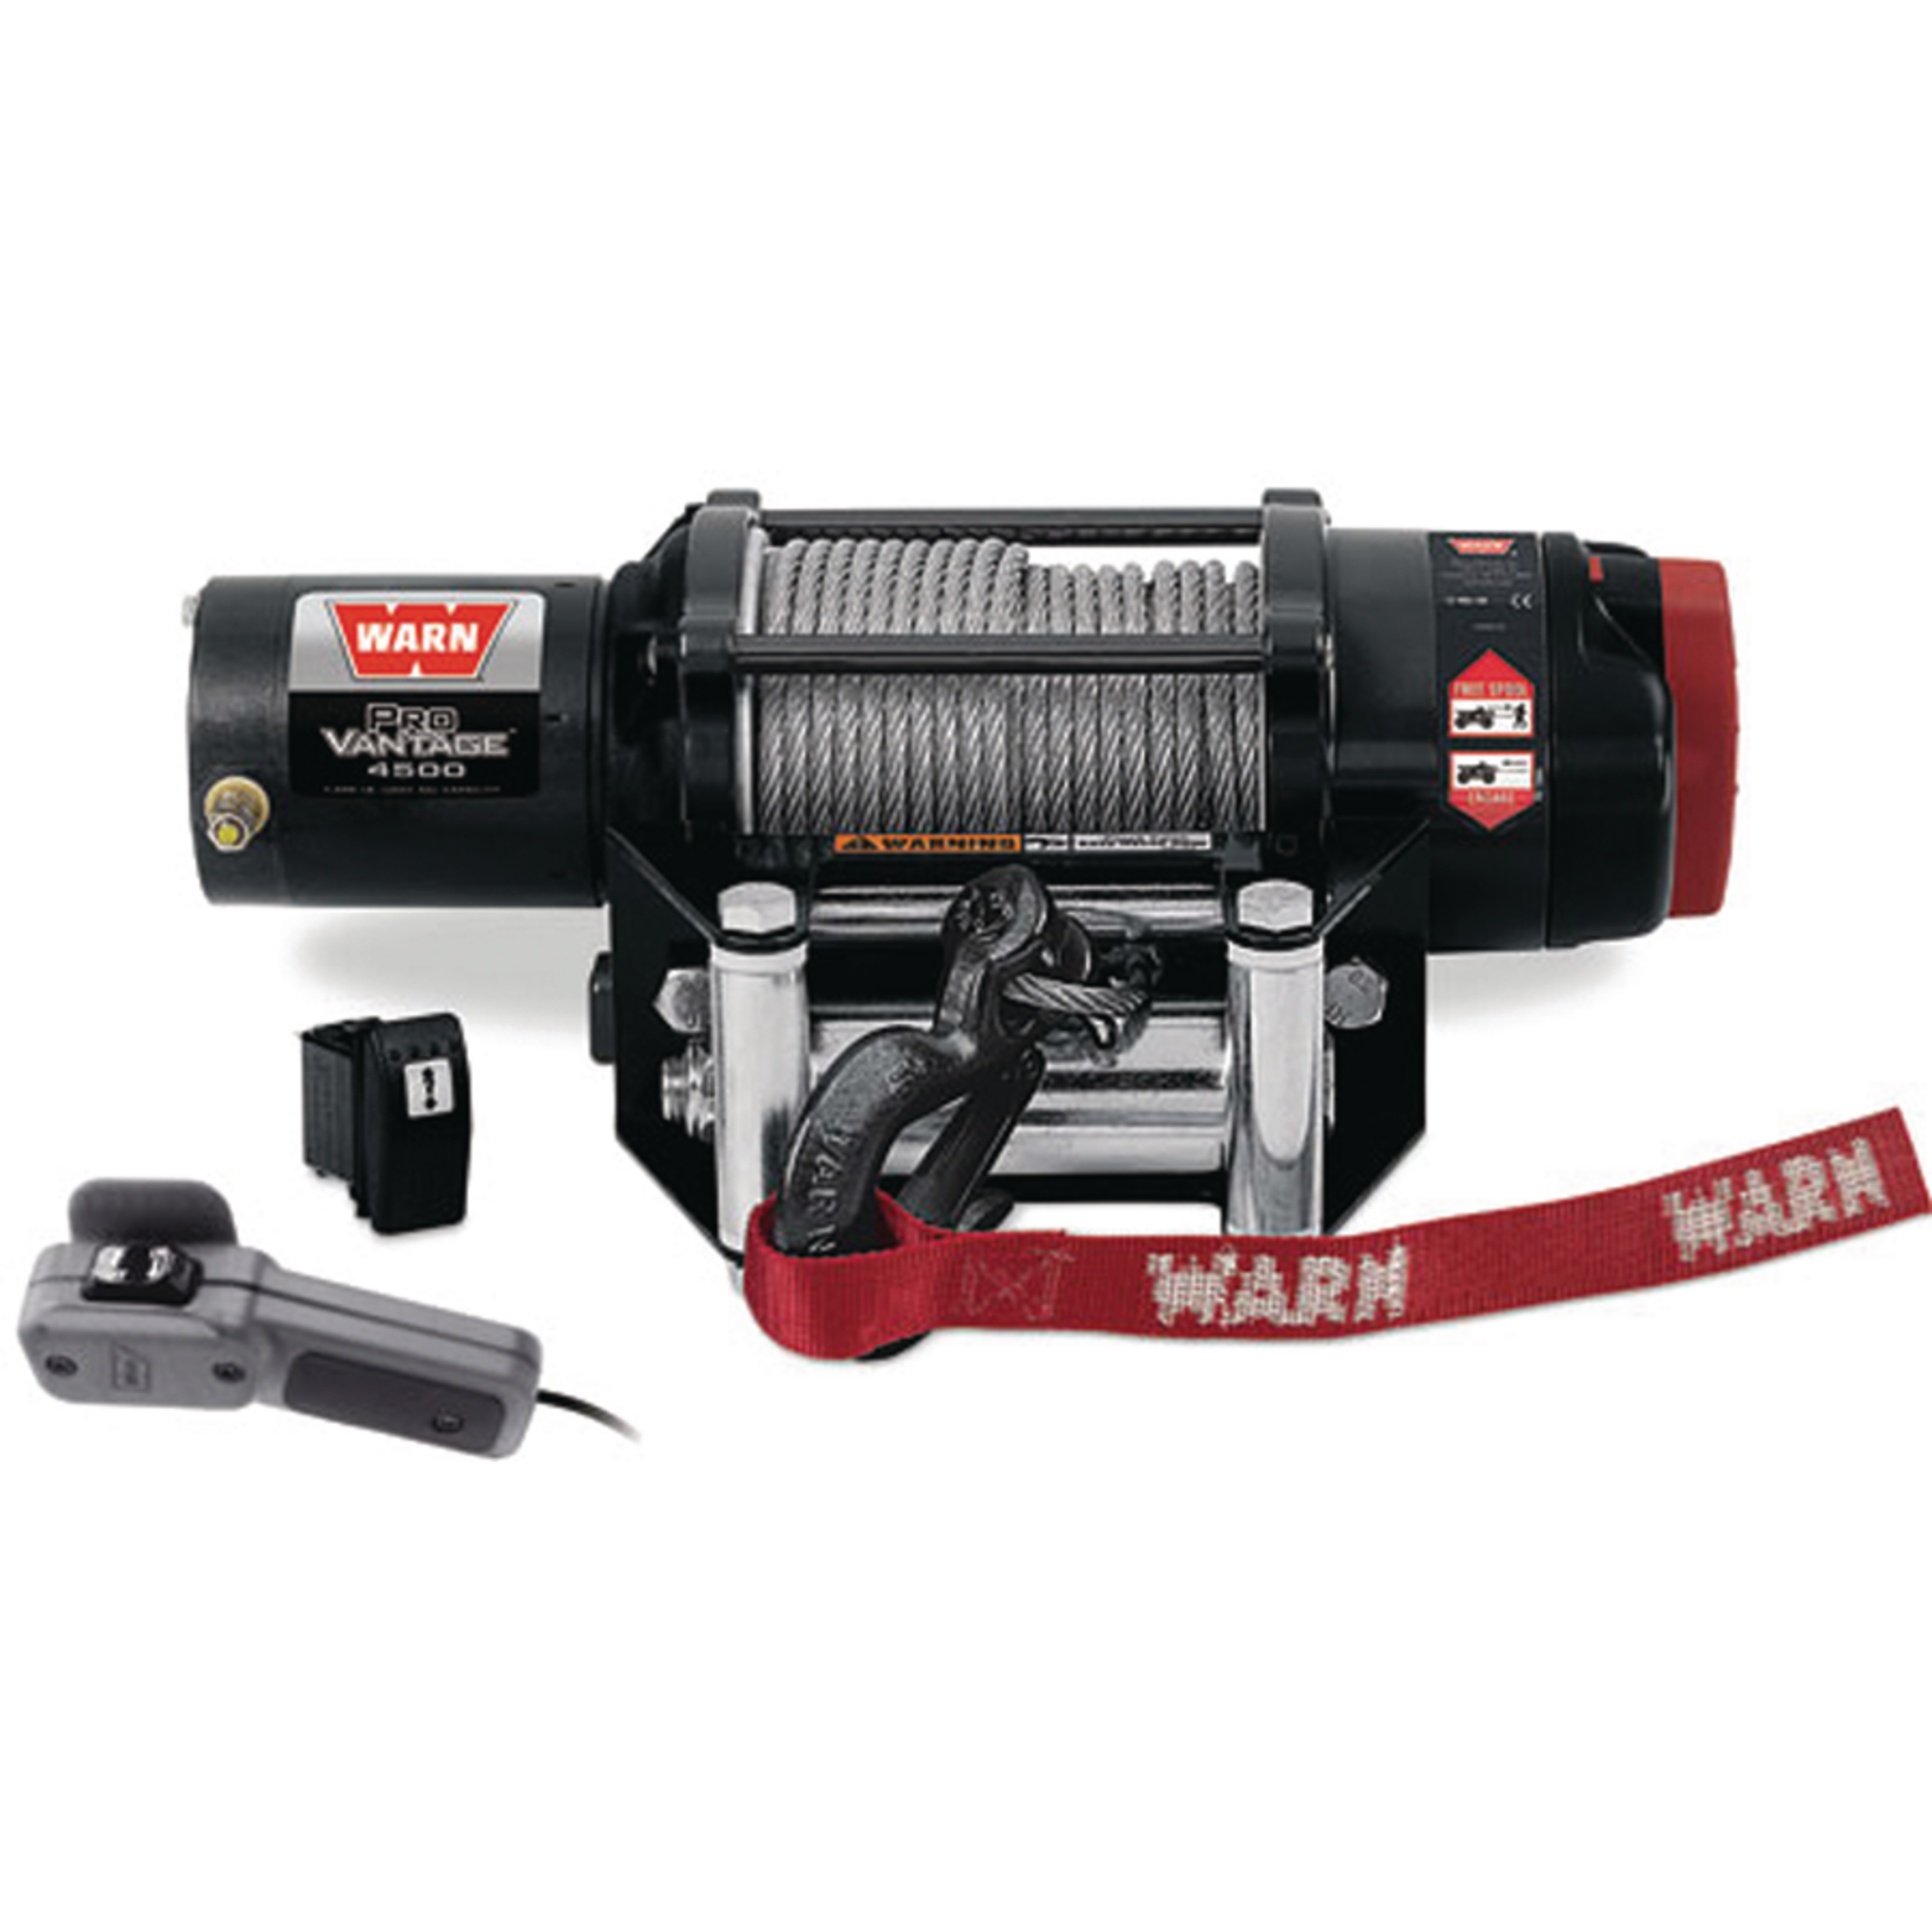 "Warn 90450 ProVantage 4500 lb Capacity RV Winch - 55' x 7/32"" Cable"